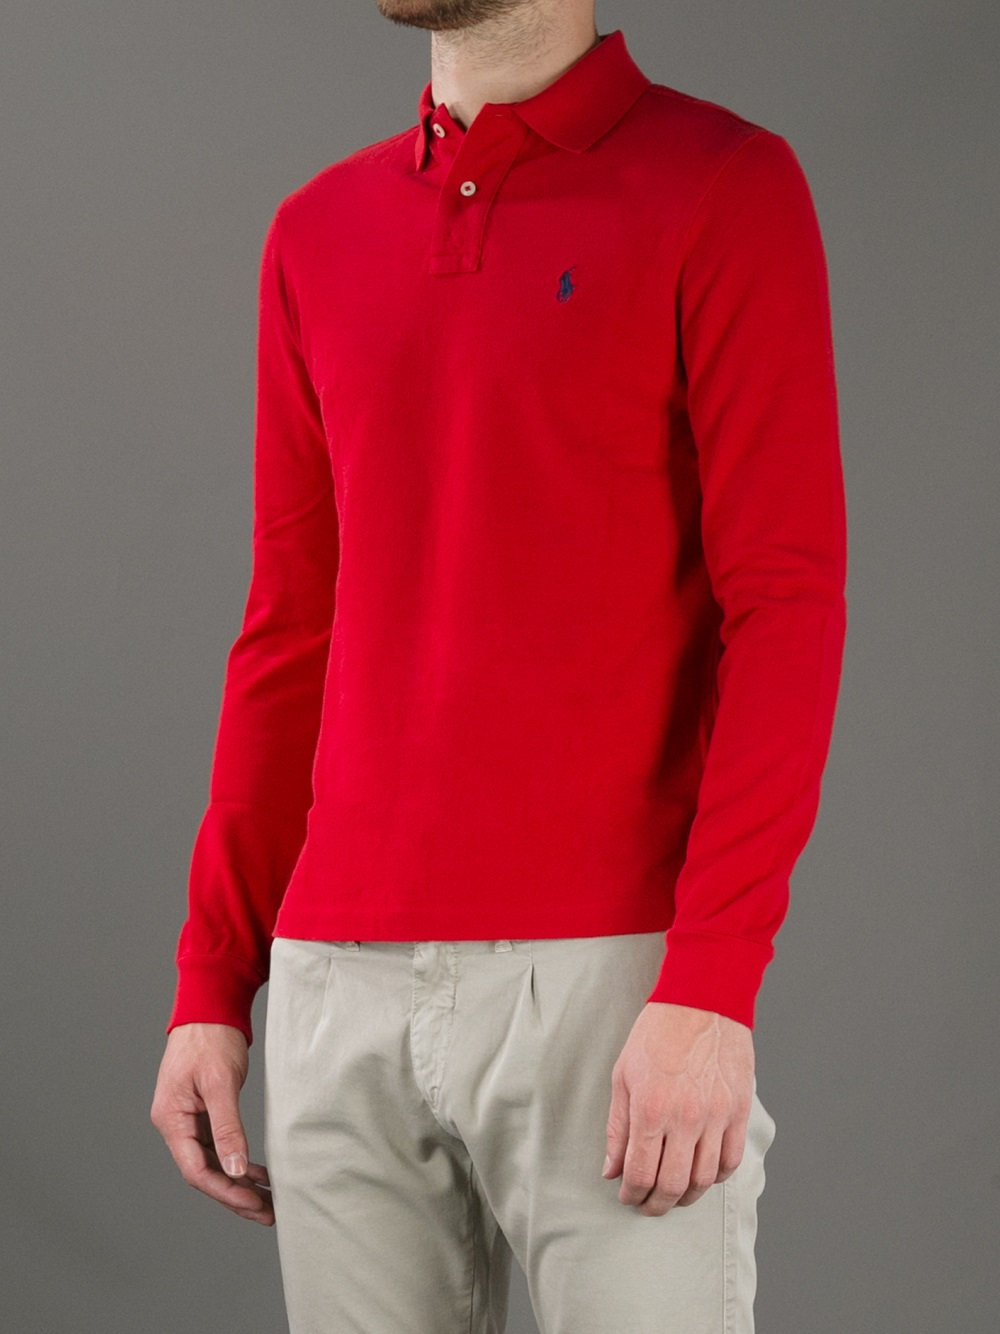 Lyst Polo Ralph Lauren Long Sleeve Polo Shirt In Red For Men